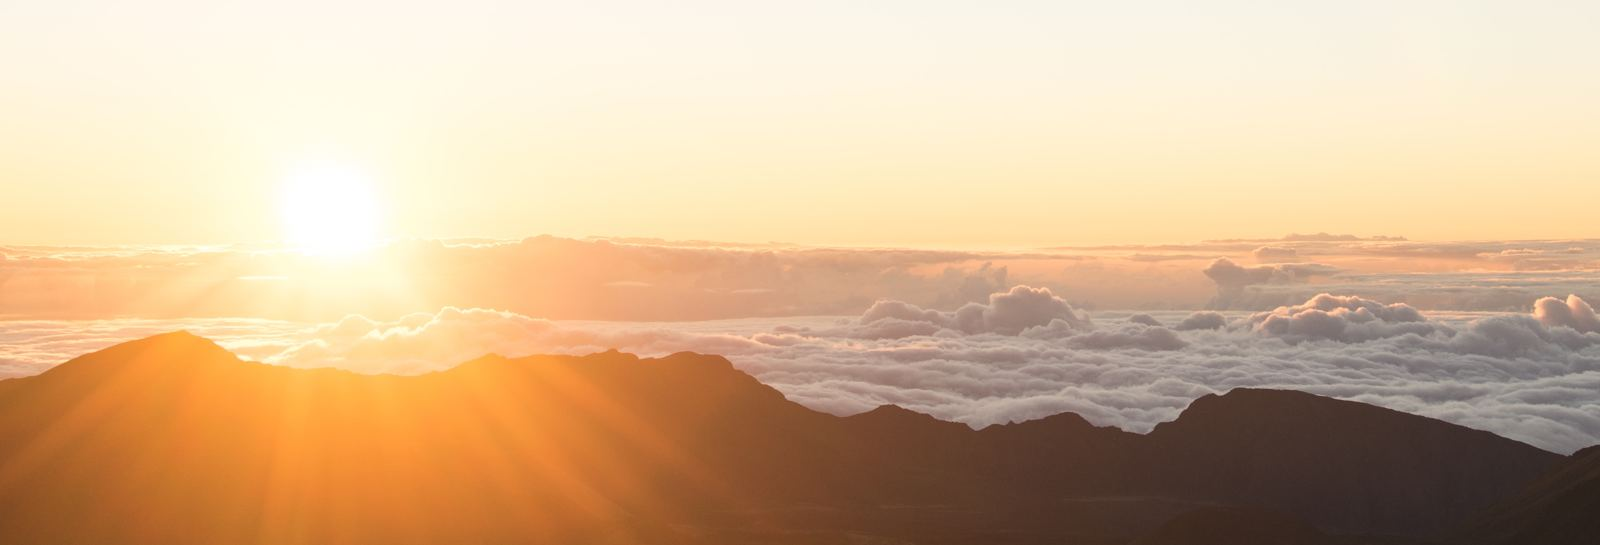 DRH_DestinationBucketList_haleakala4